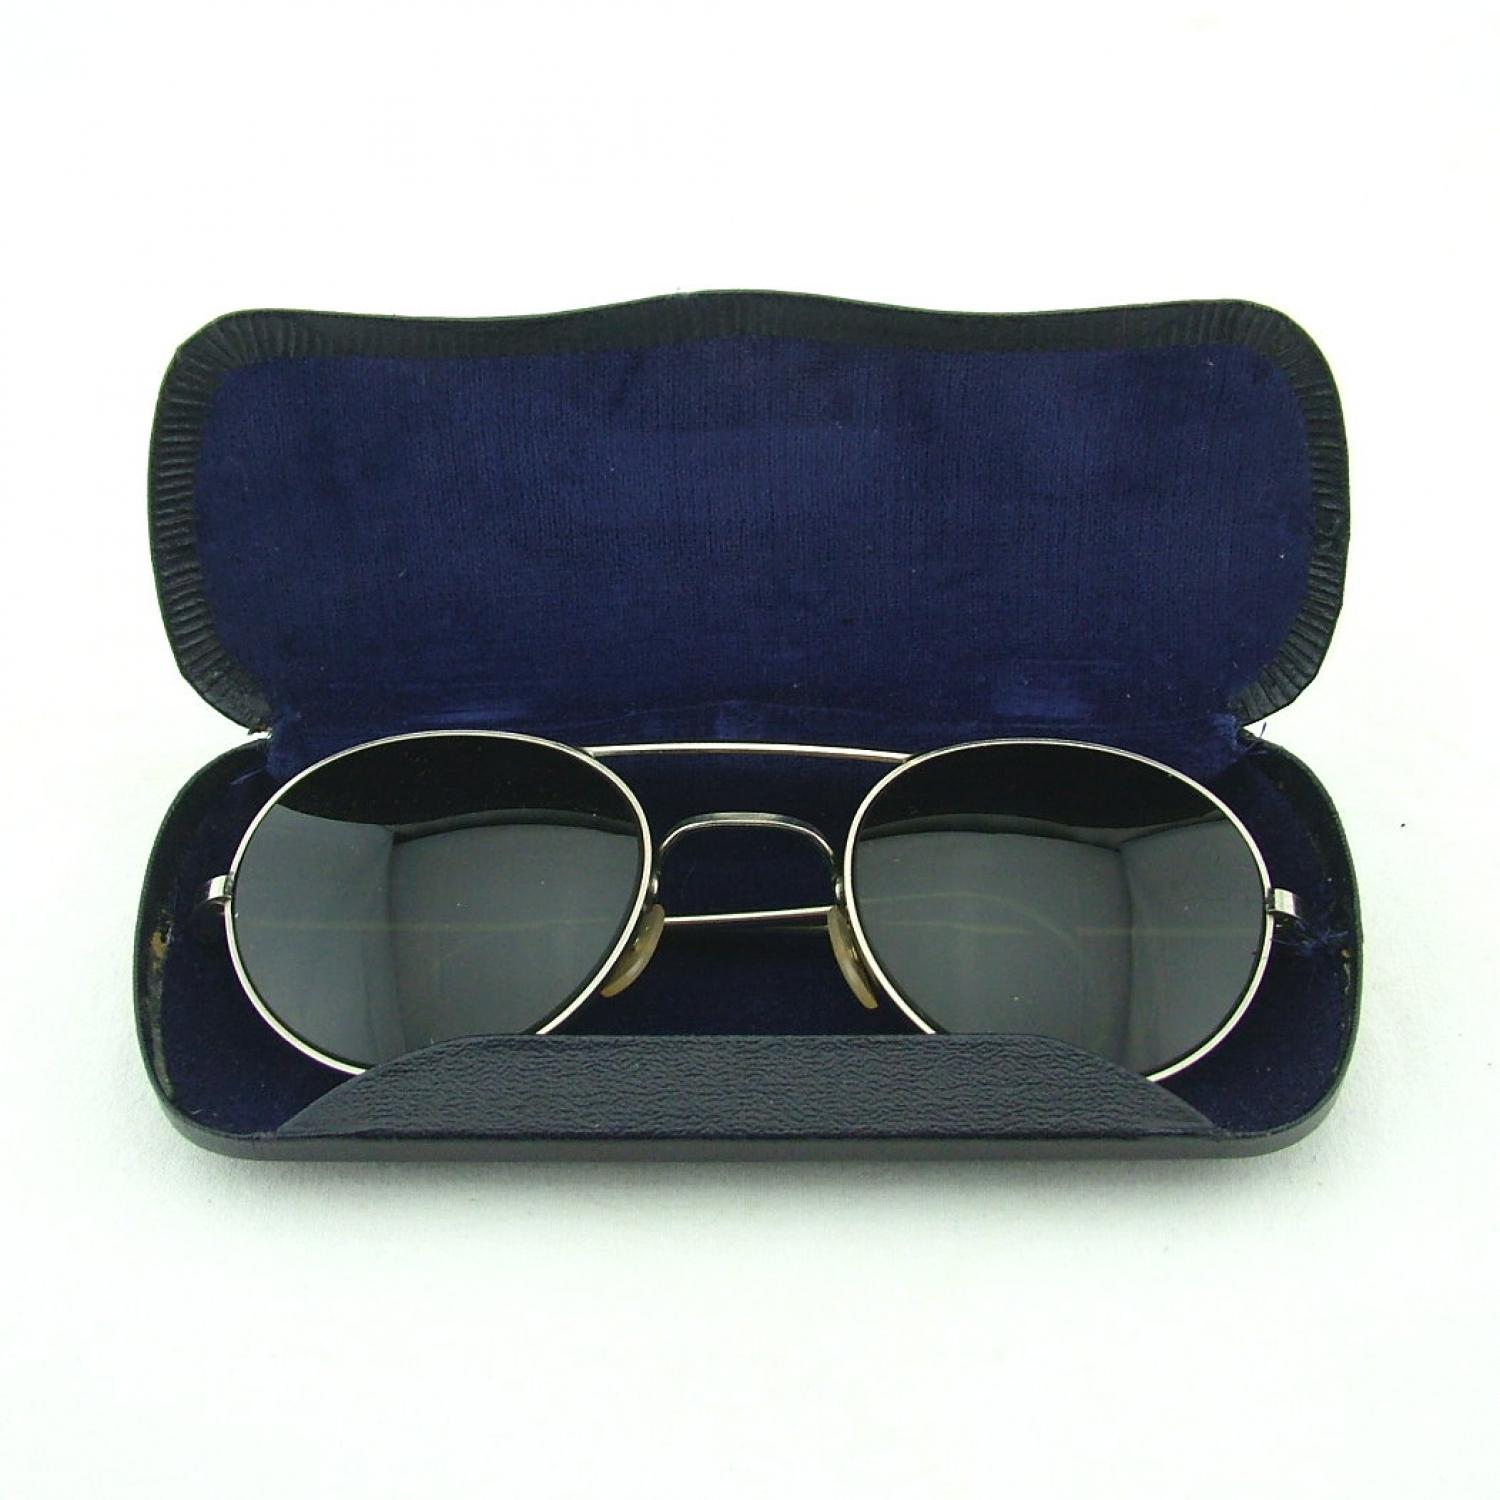 RAF sunglasses, type G, cased